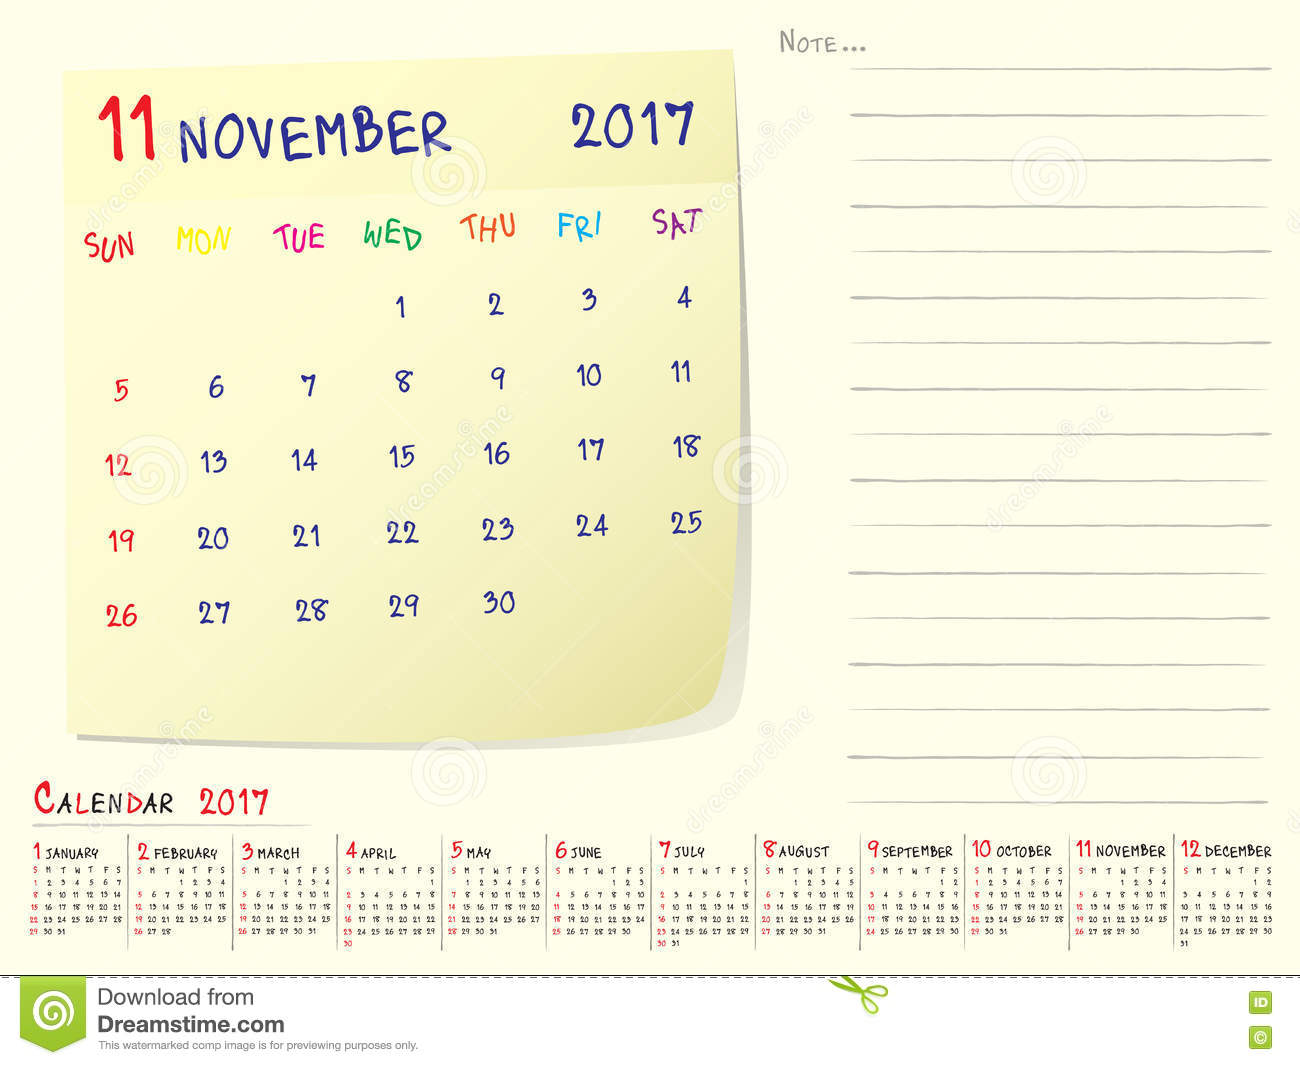 November Calendar Design : Calendar paper note november stock vector image